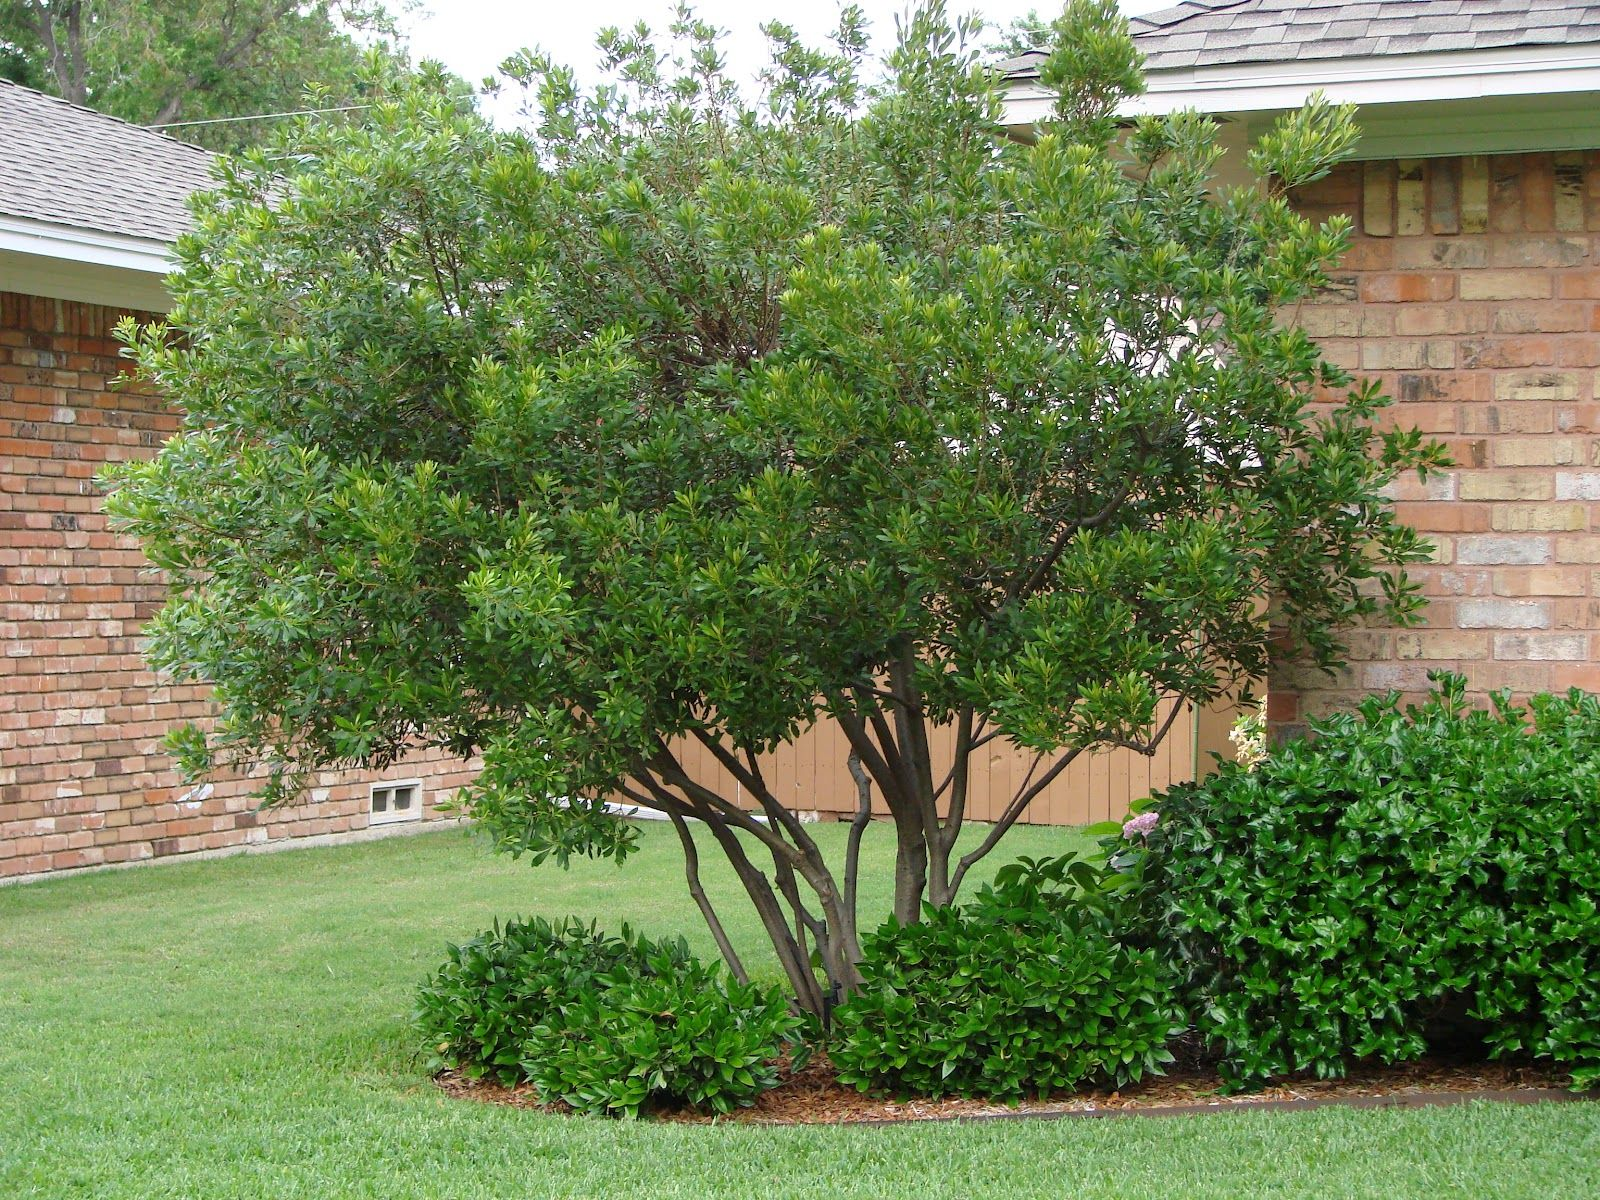 Morella cerifera wax myrtle small evergreen tree often for Popular small trees